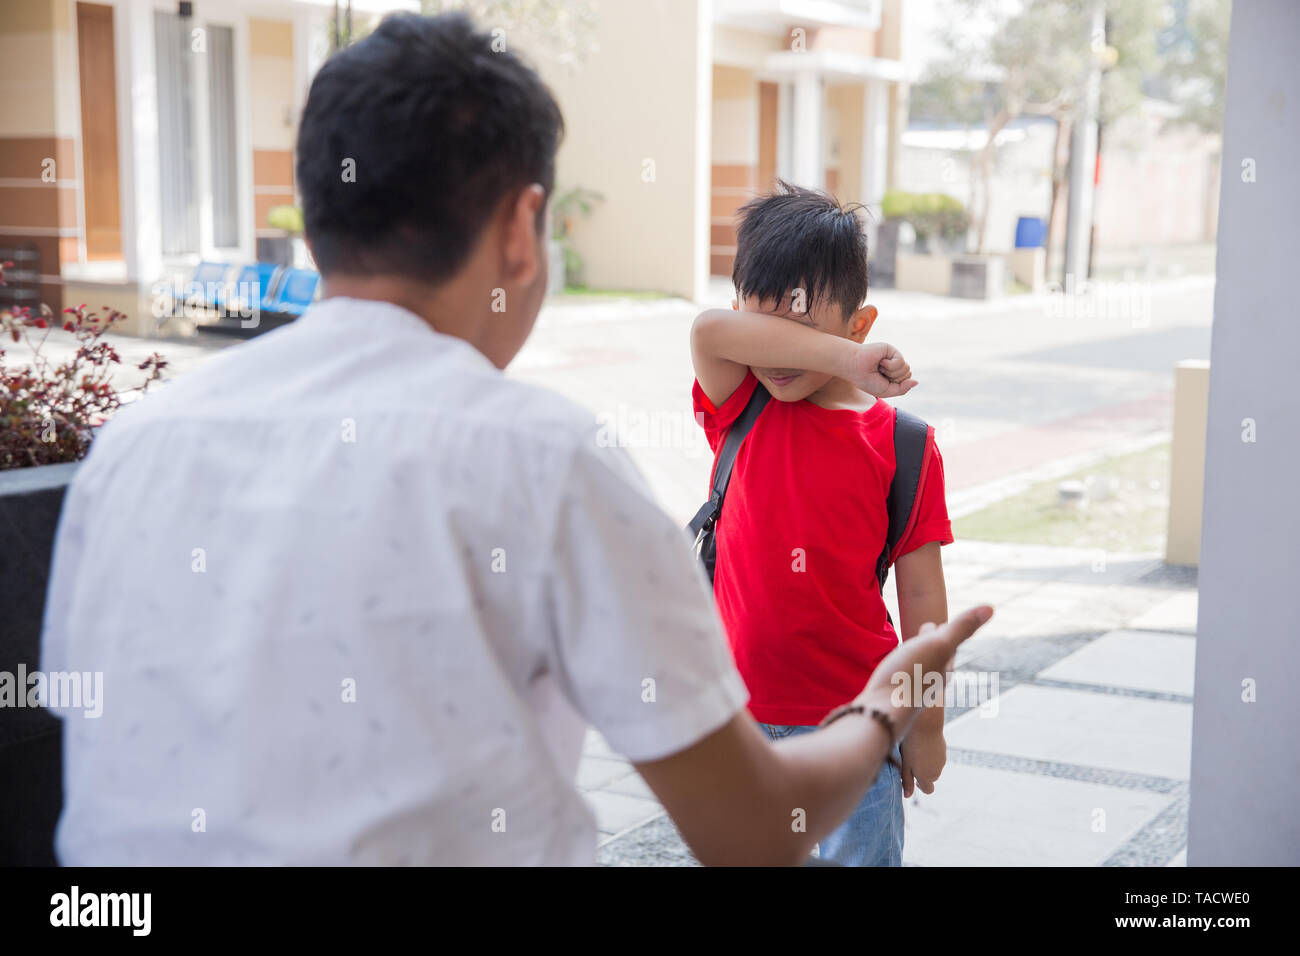 Angry father scolding son in front of the house - Stock Image